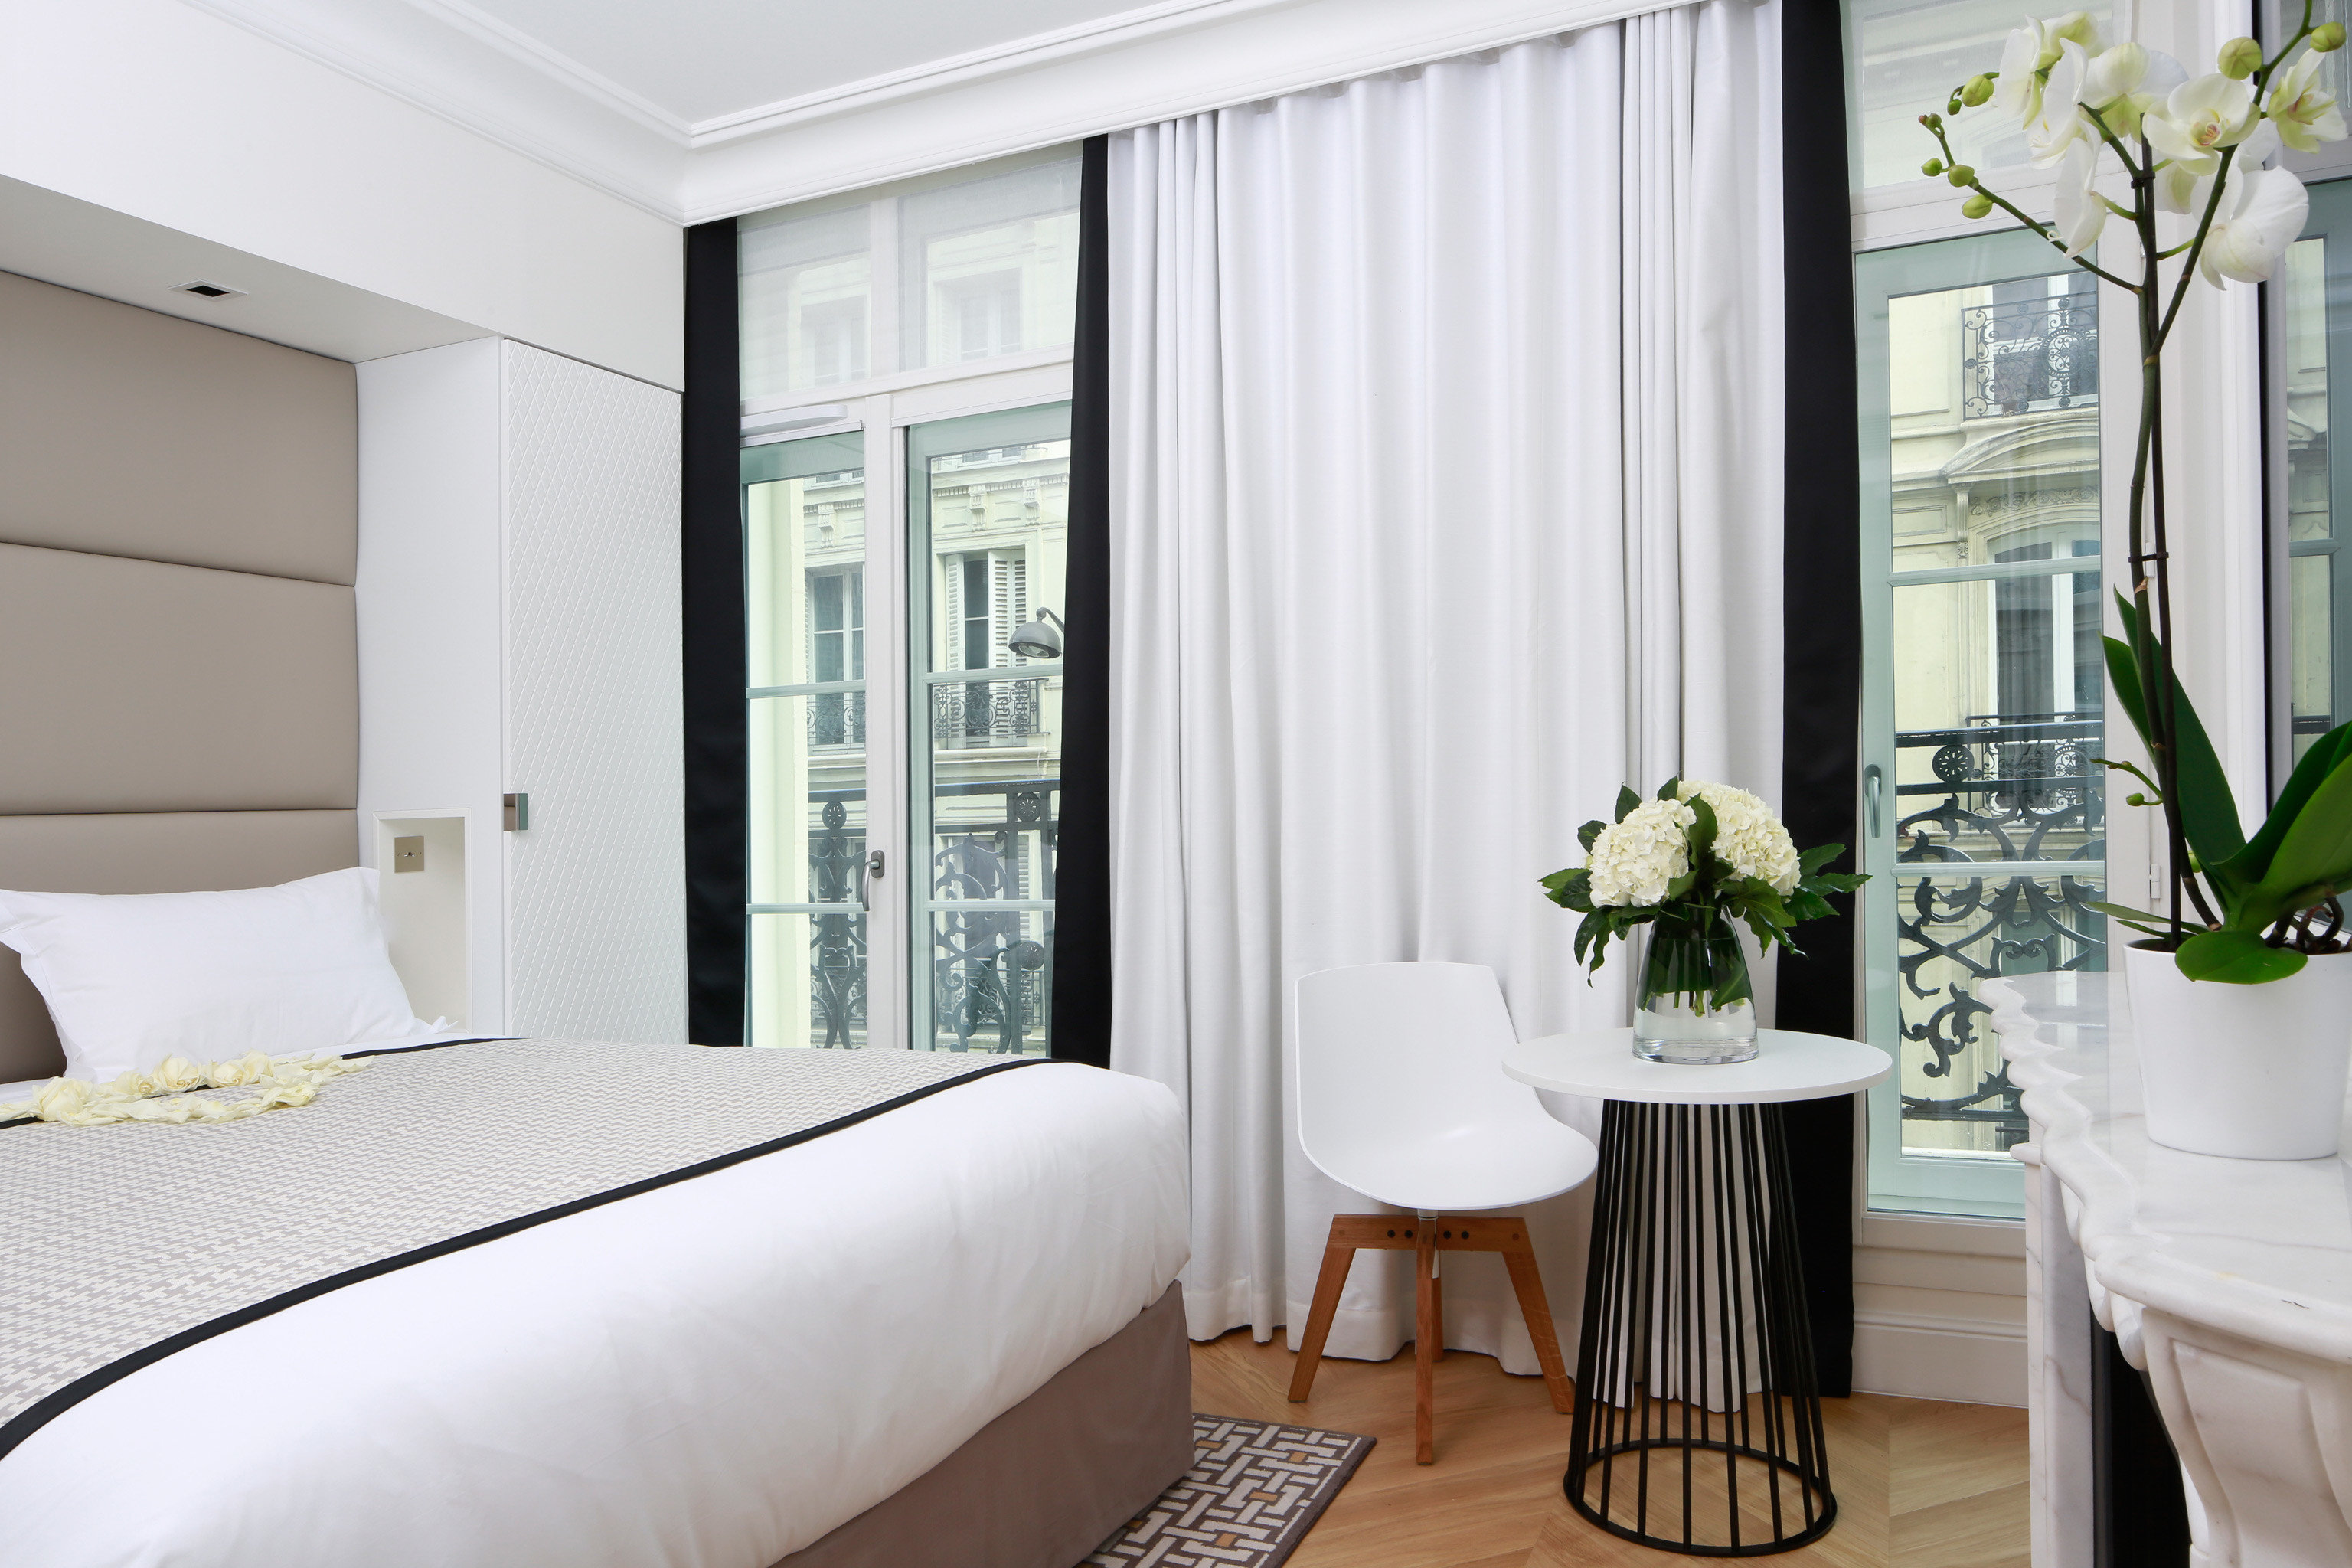 Bedroom City Hip Modern Trip Ideas property curtain home Suite window treatment textile cottage